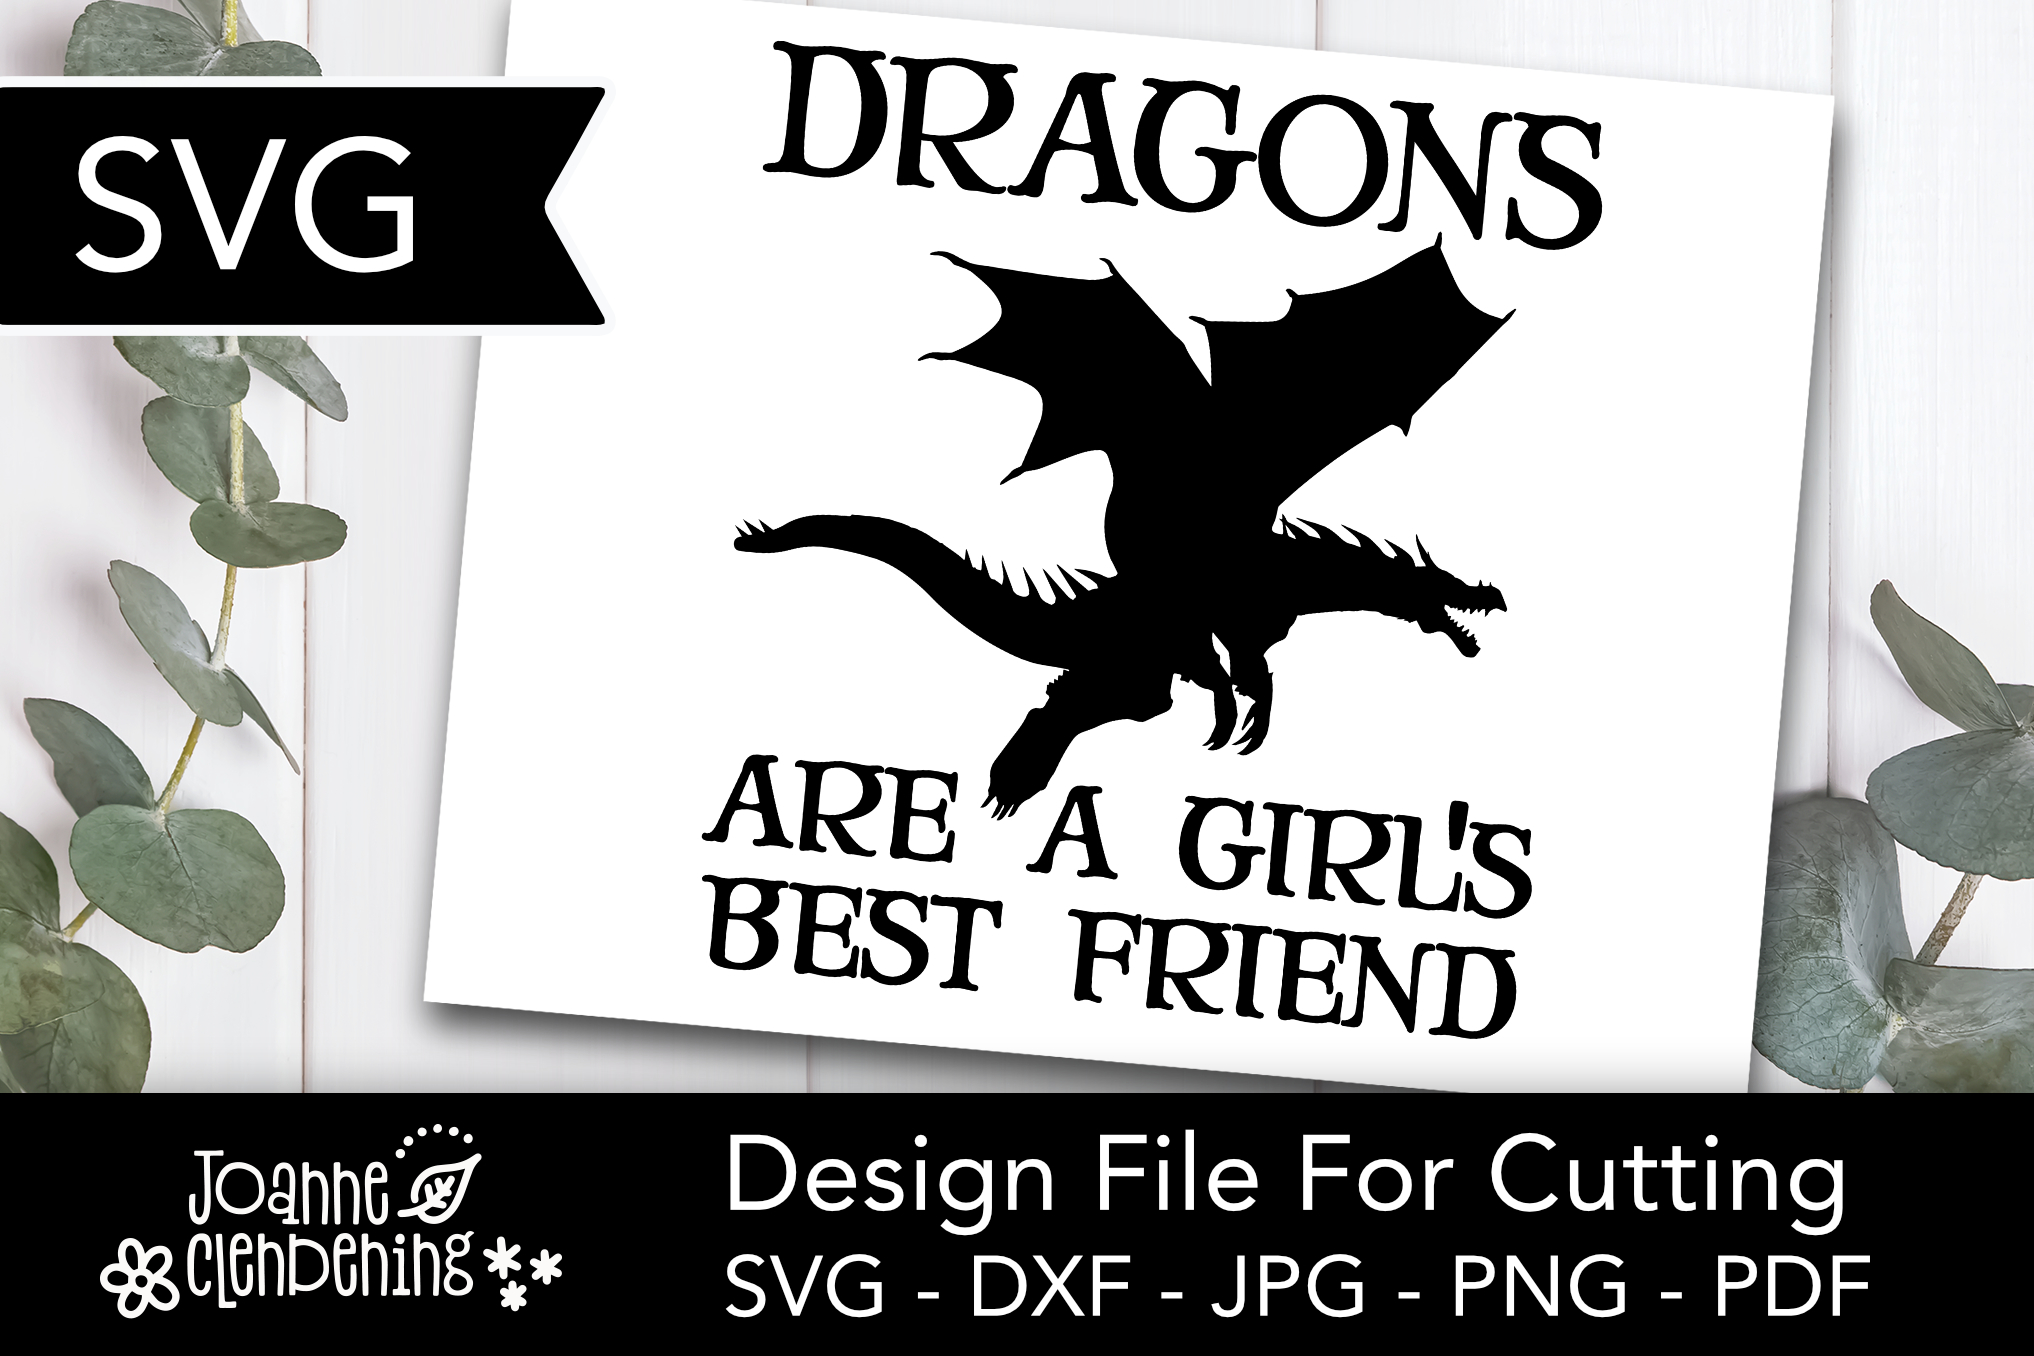 Download Free Dragons Are A Girl S Best Friend Graphic By Joanne Clendening for Cricut Explore, Silhouette and other cutting machines.